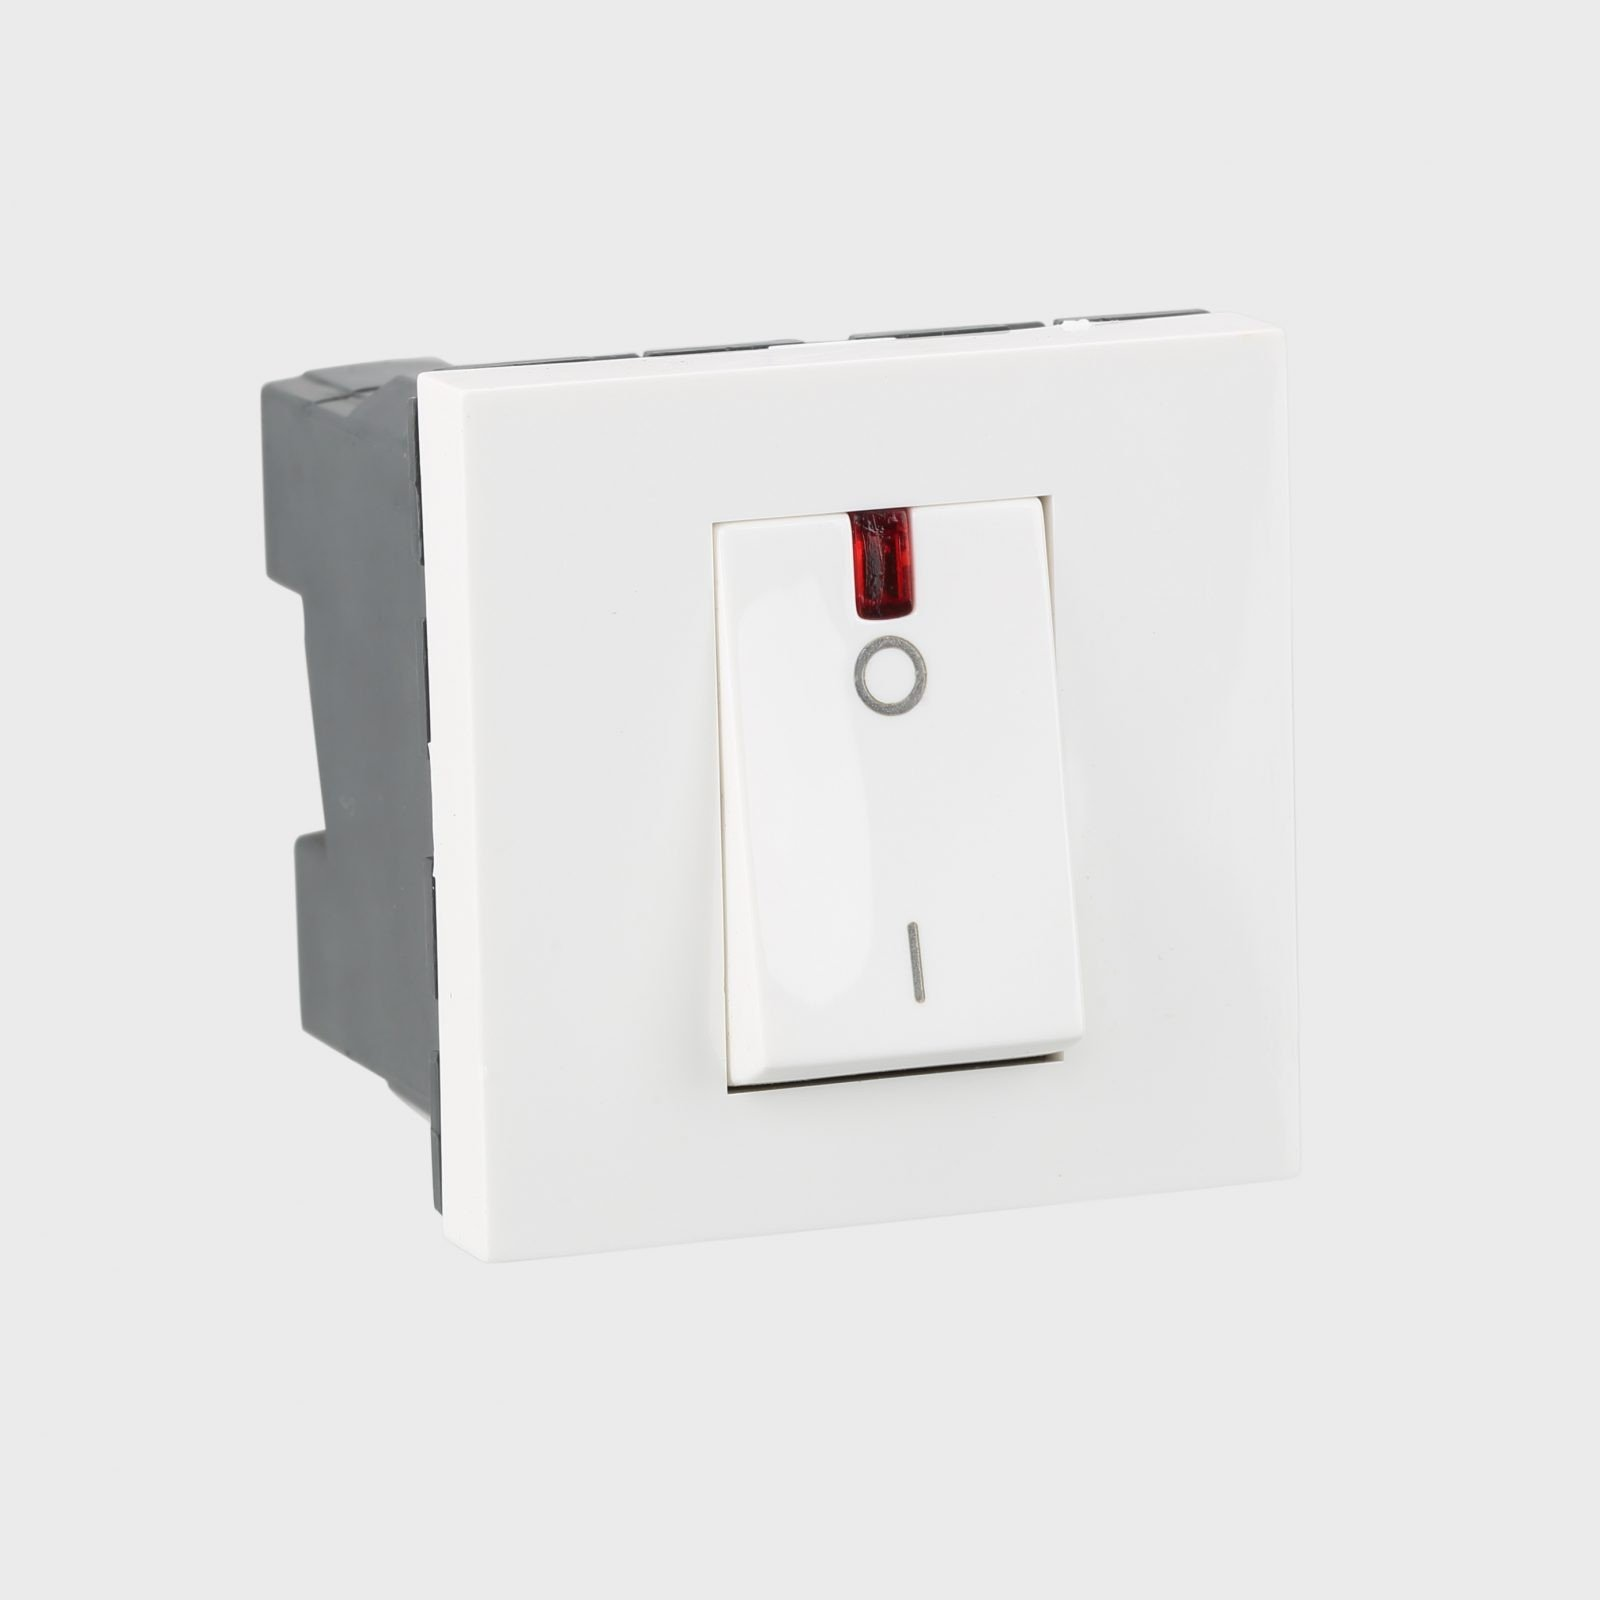 Arteor - 1-way double pole switch with indicator  2 module~5734 12